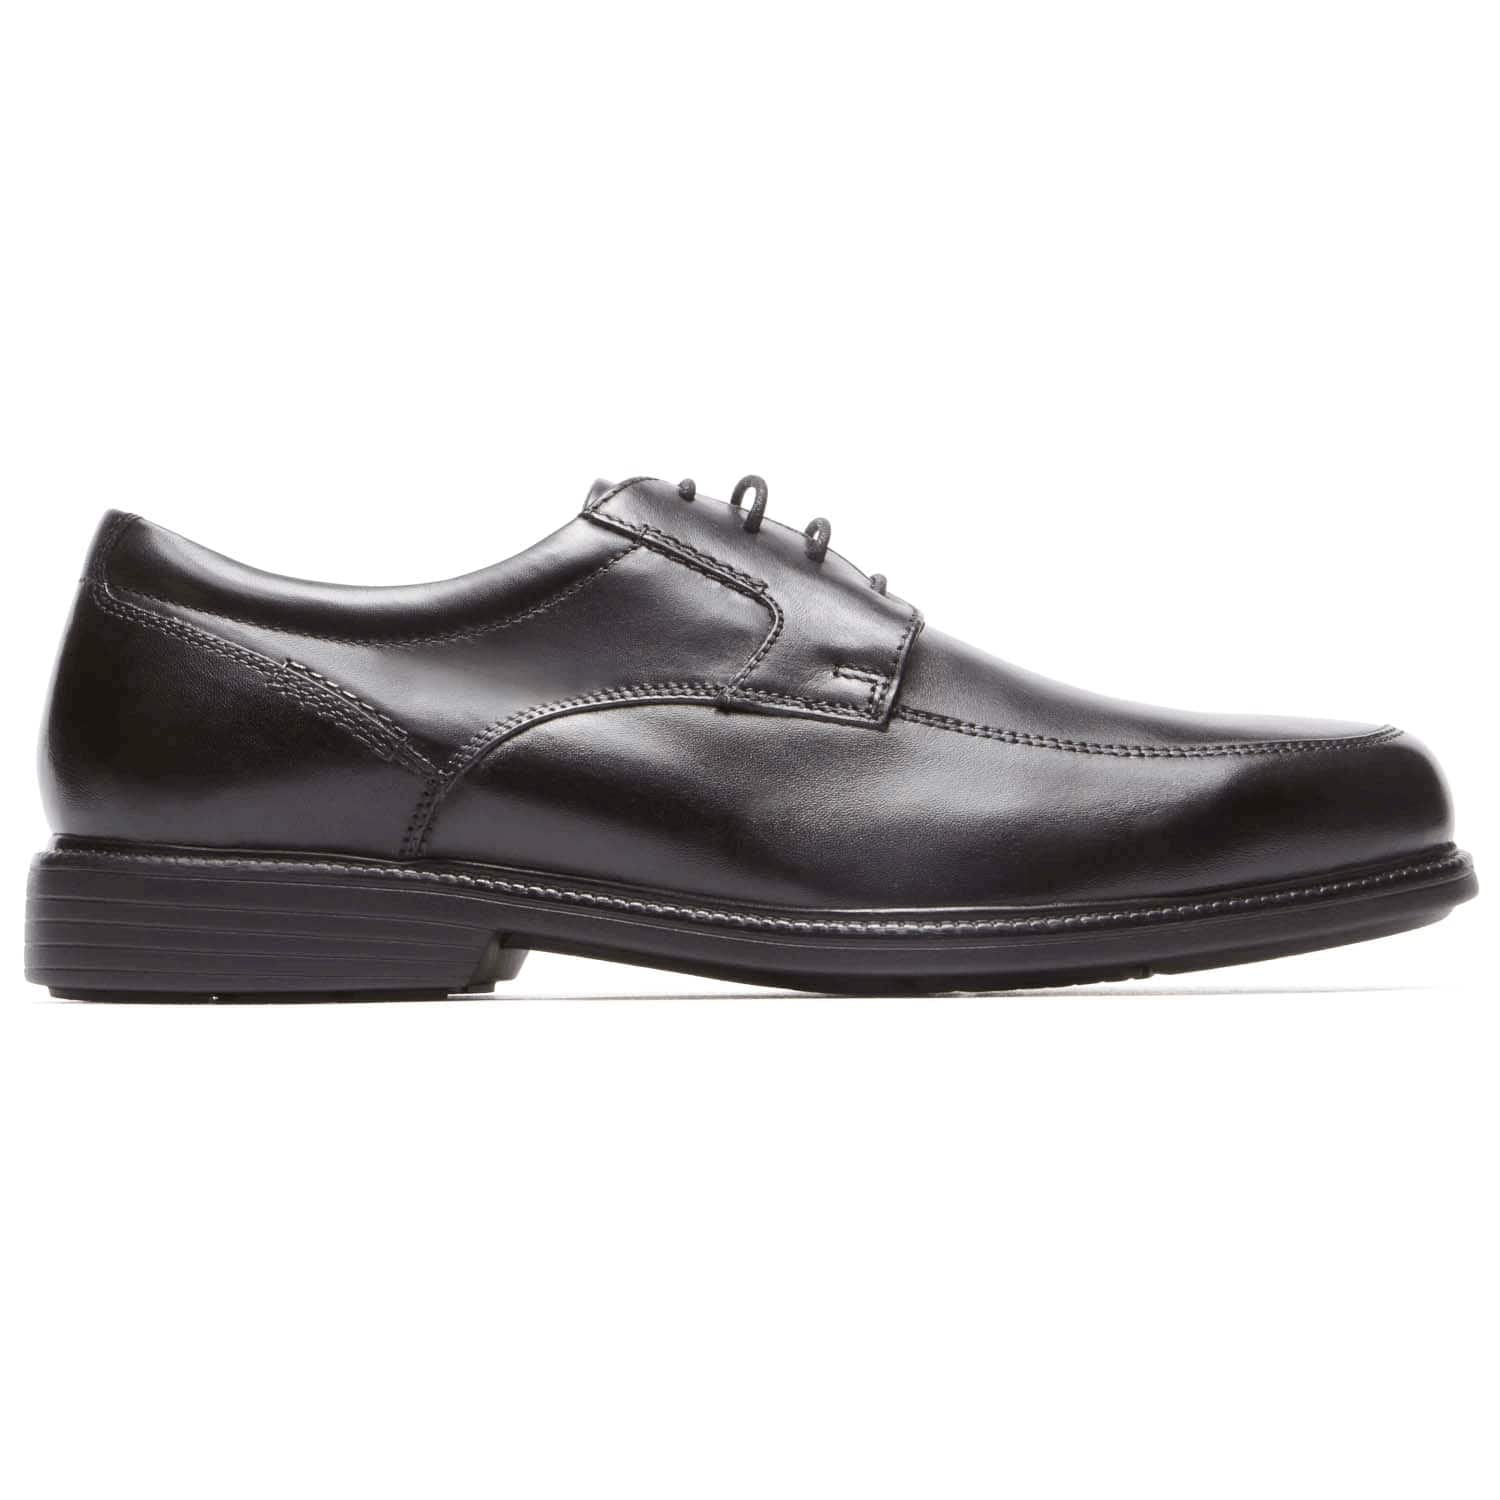 Rockport Outlet: 2 Pairs of Men's or Women's Shoes $89 + Free Shipping